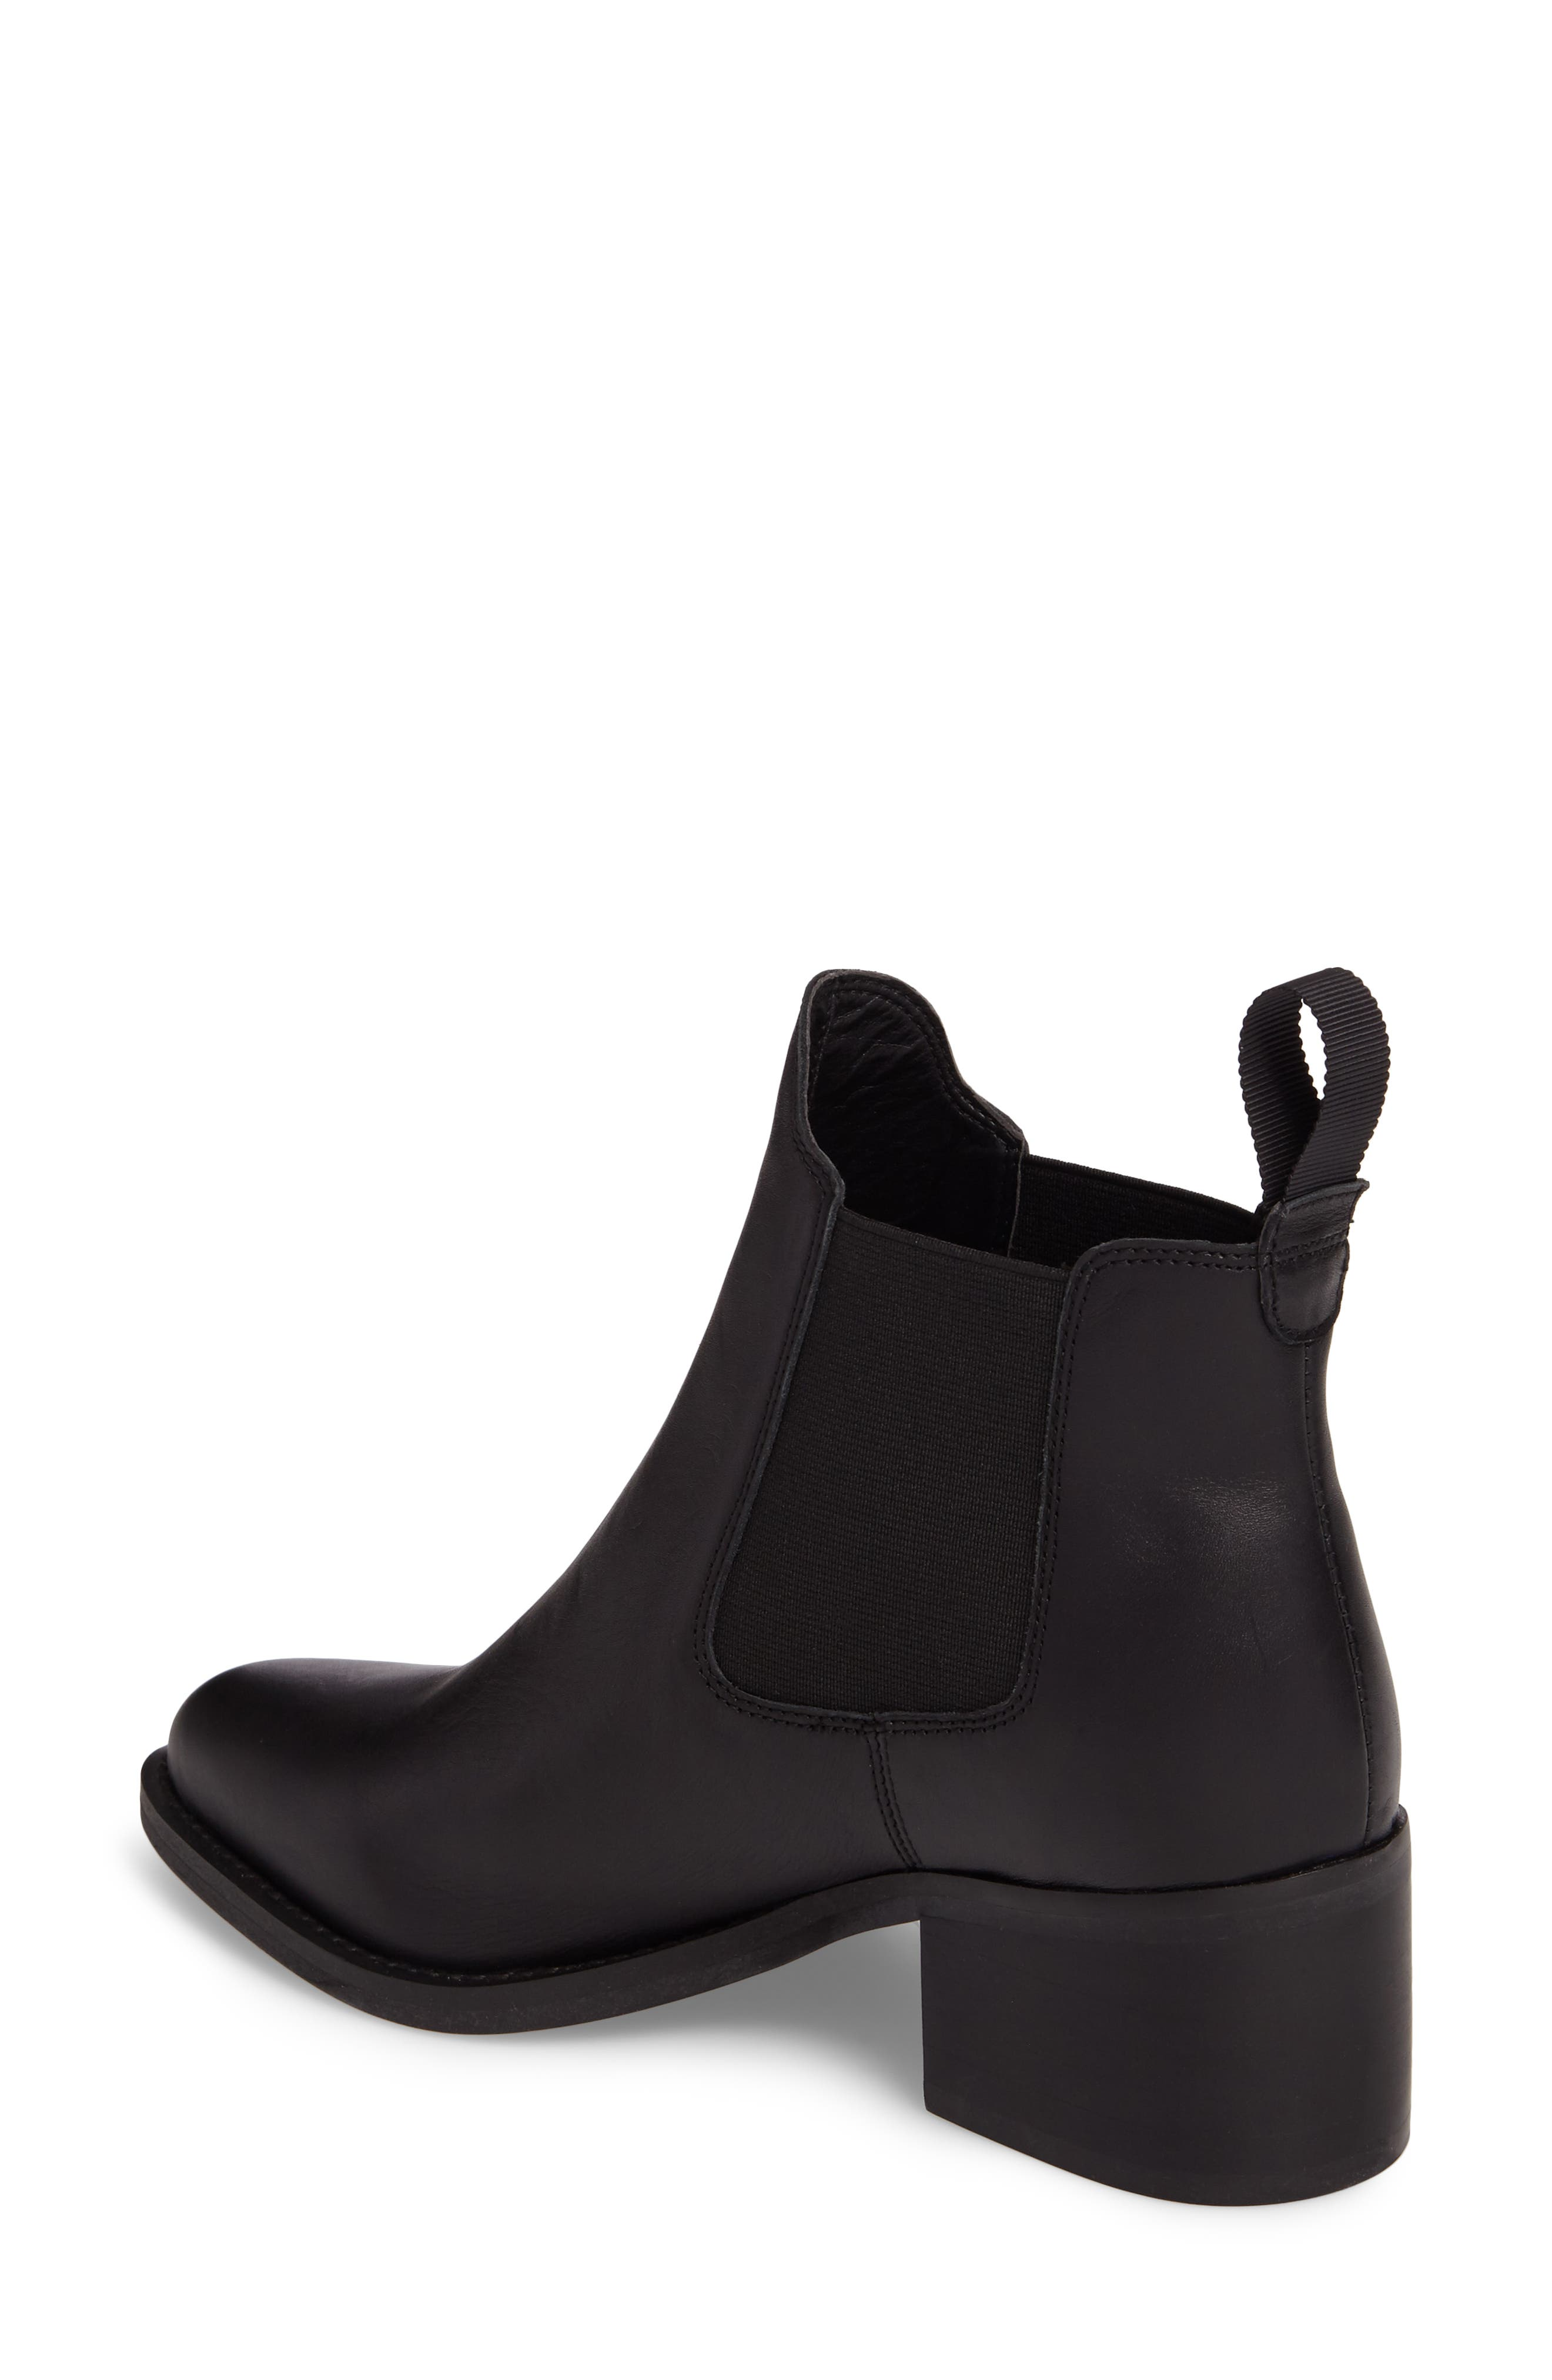 Fraya Ankle Bootie,                             Alternate thumbnail 2, color,                             BLACK LEATHER